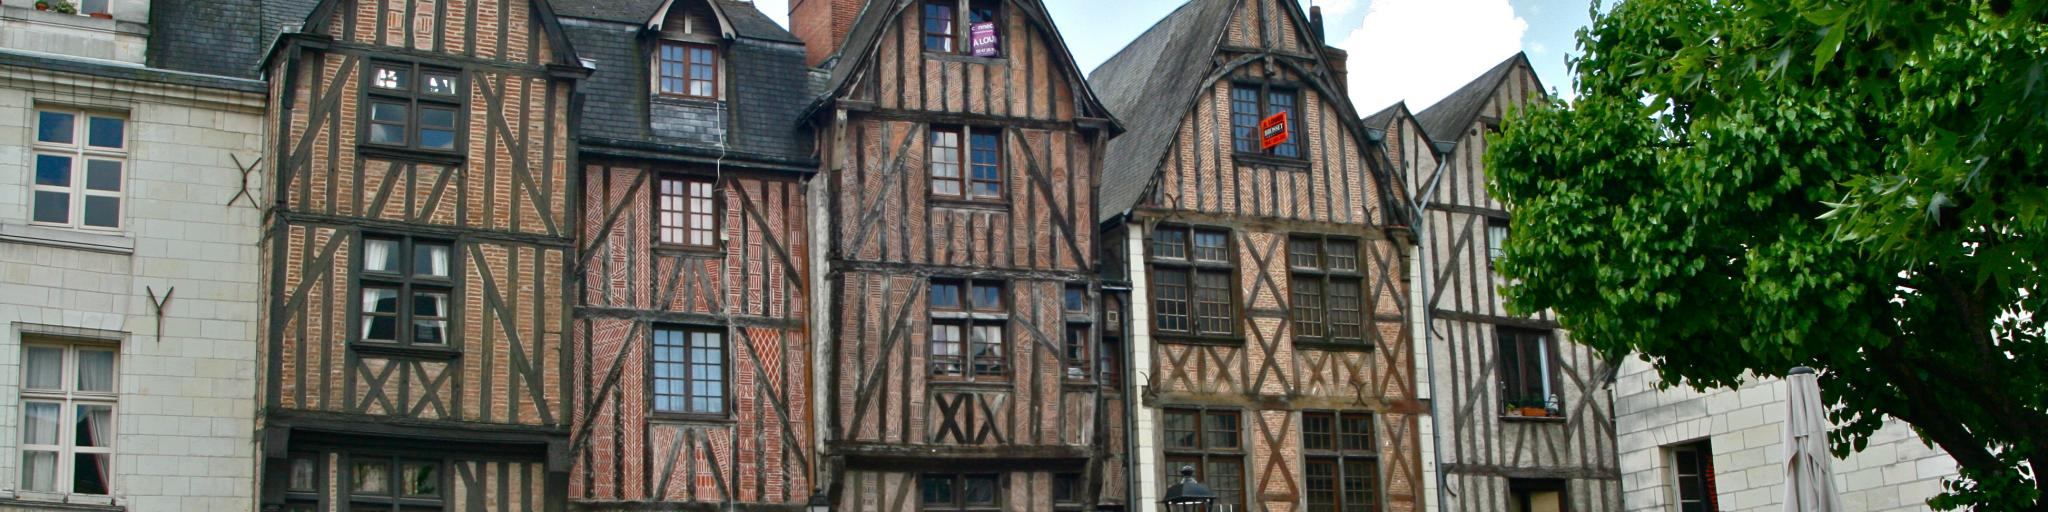 Half-timbered houses line a square in Tours, France, where people sit on cafe terraces eating and chatting